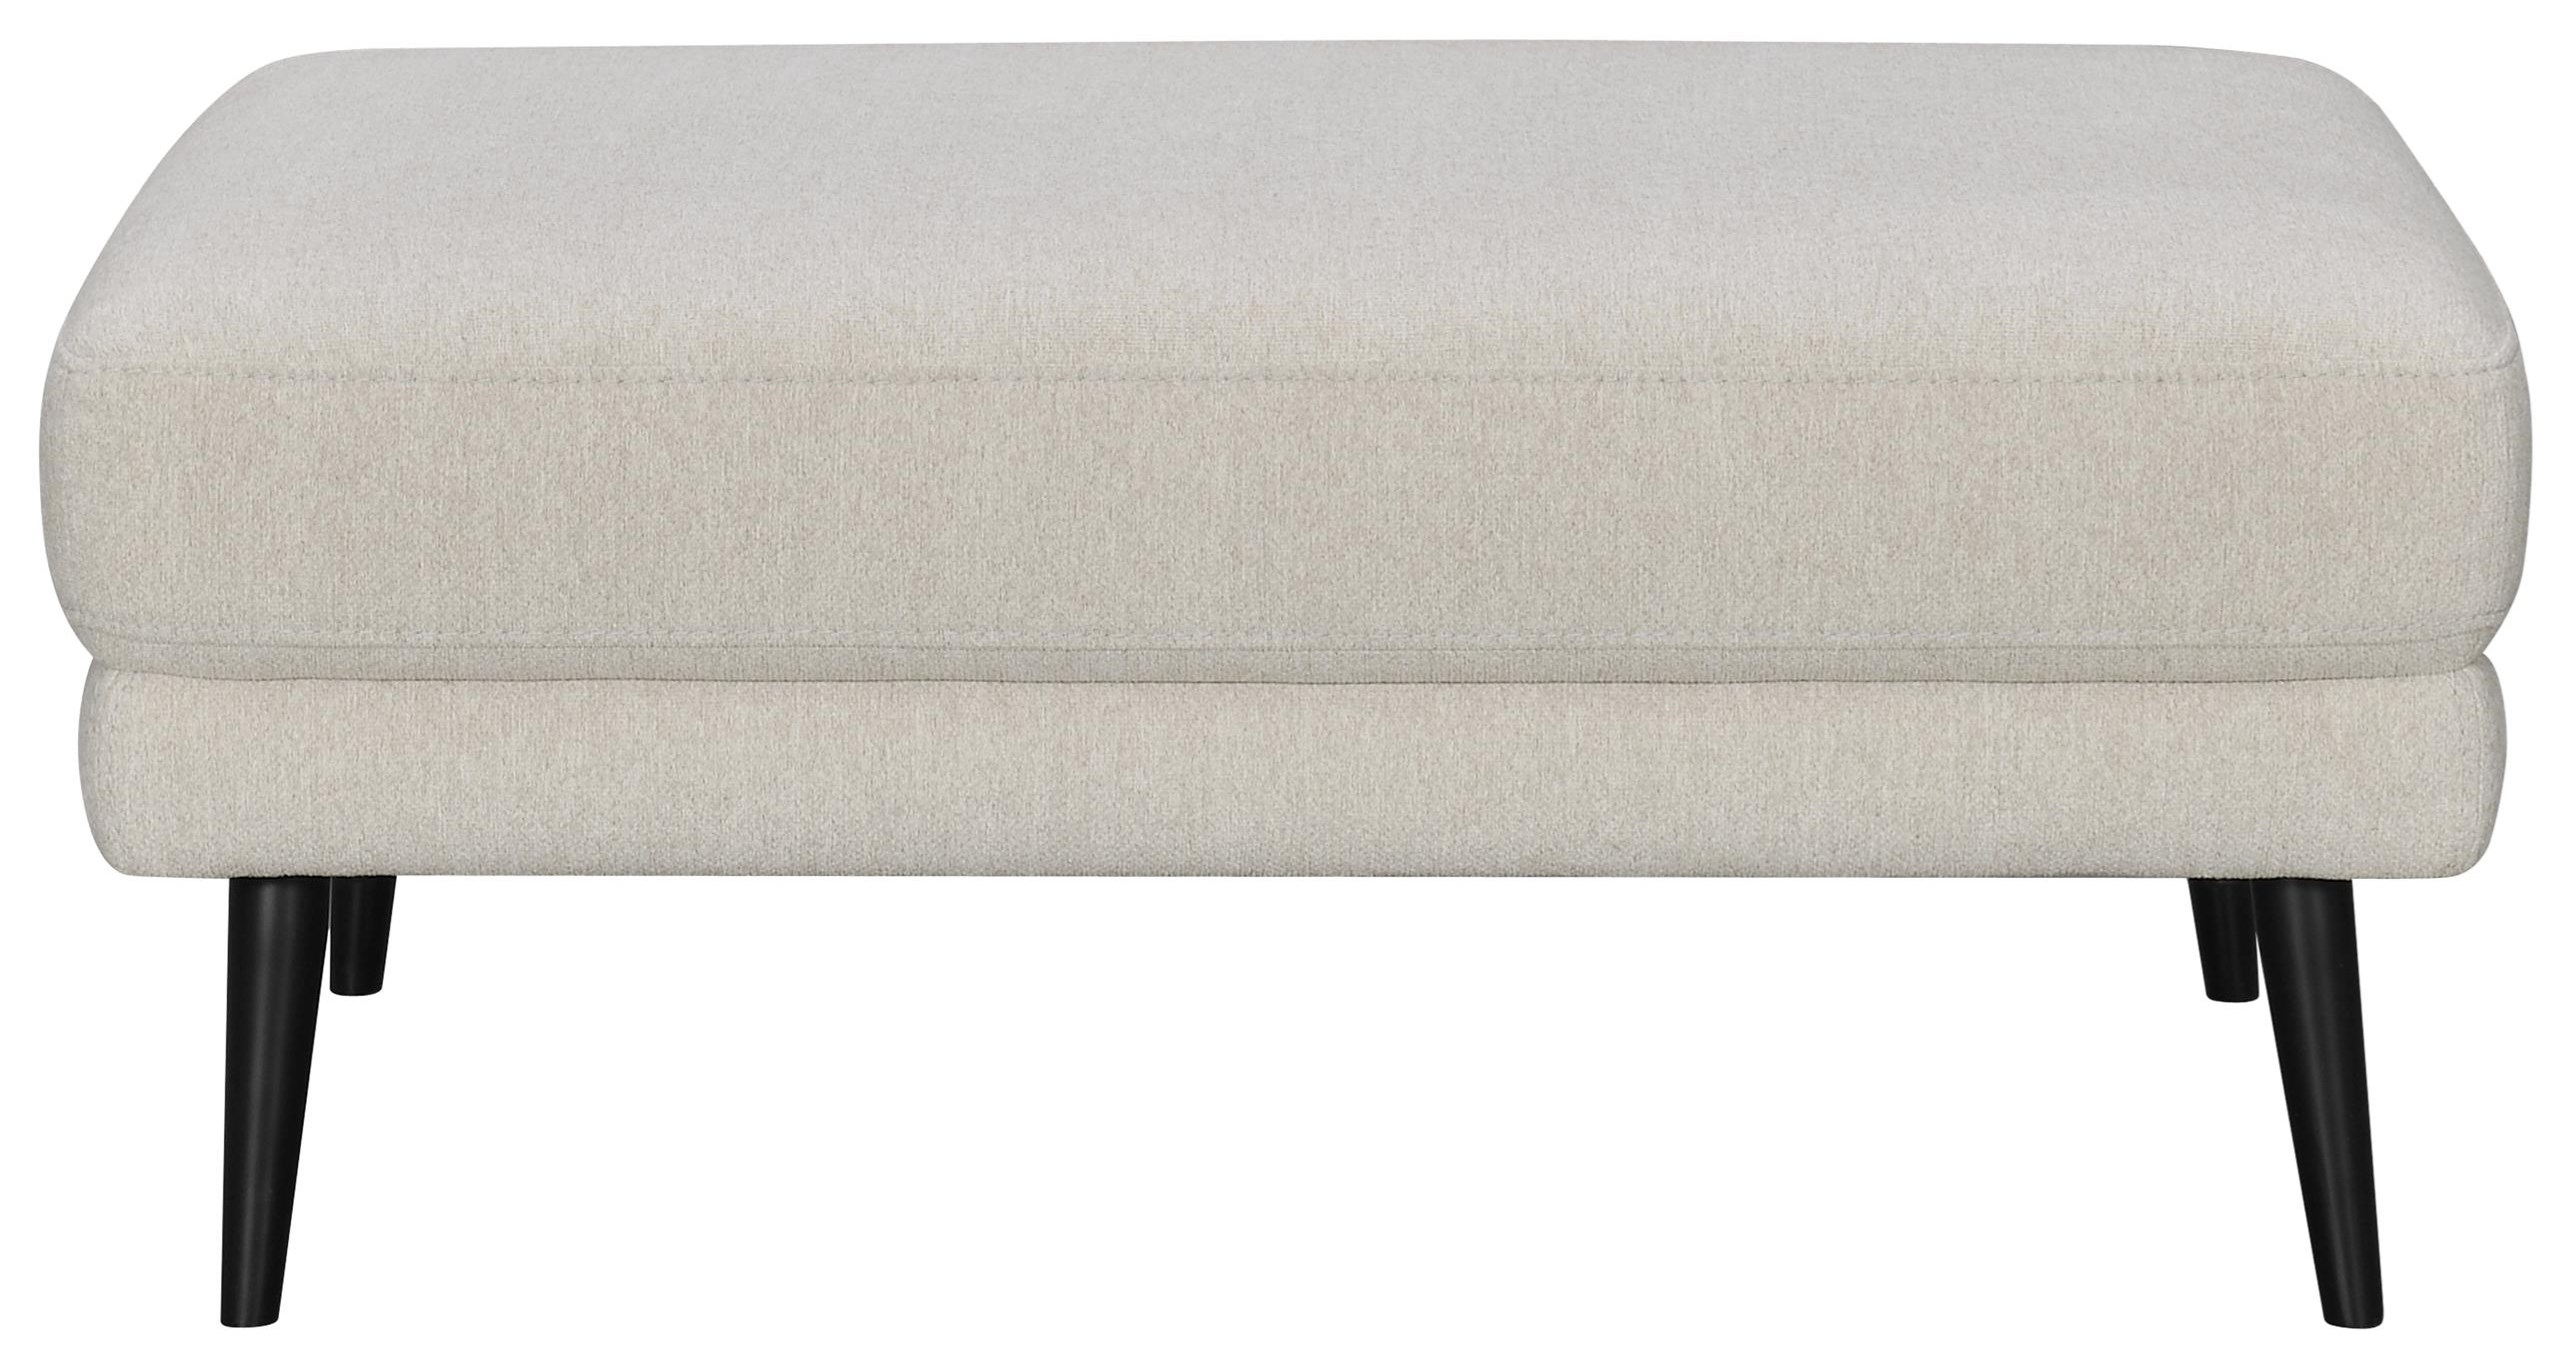 Harlow Ottoman by Violino at Red Knot